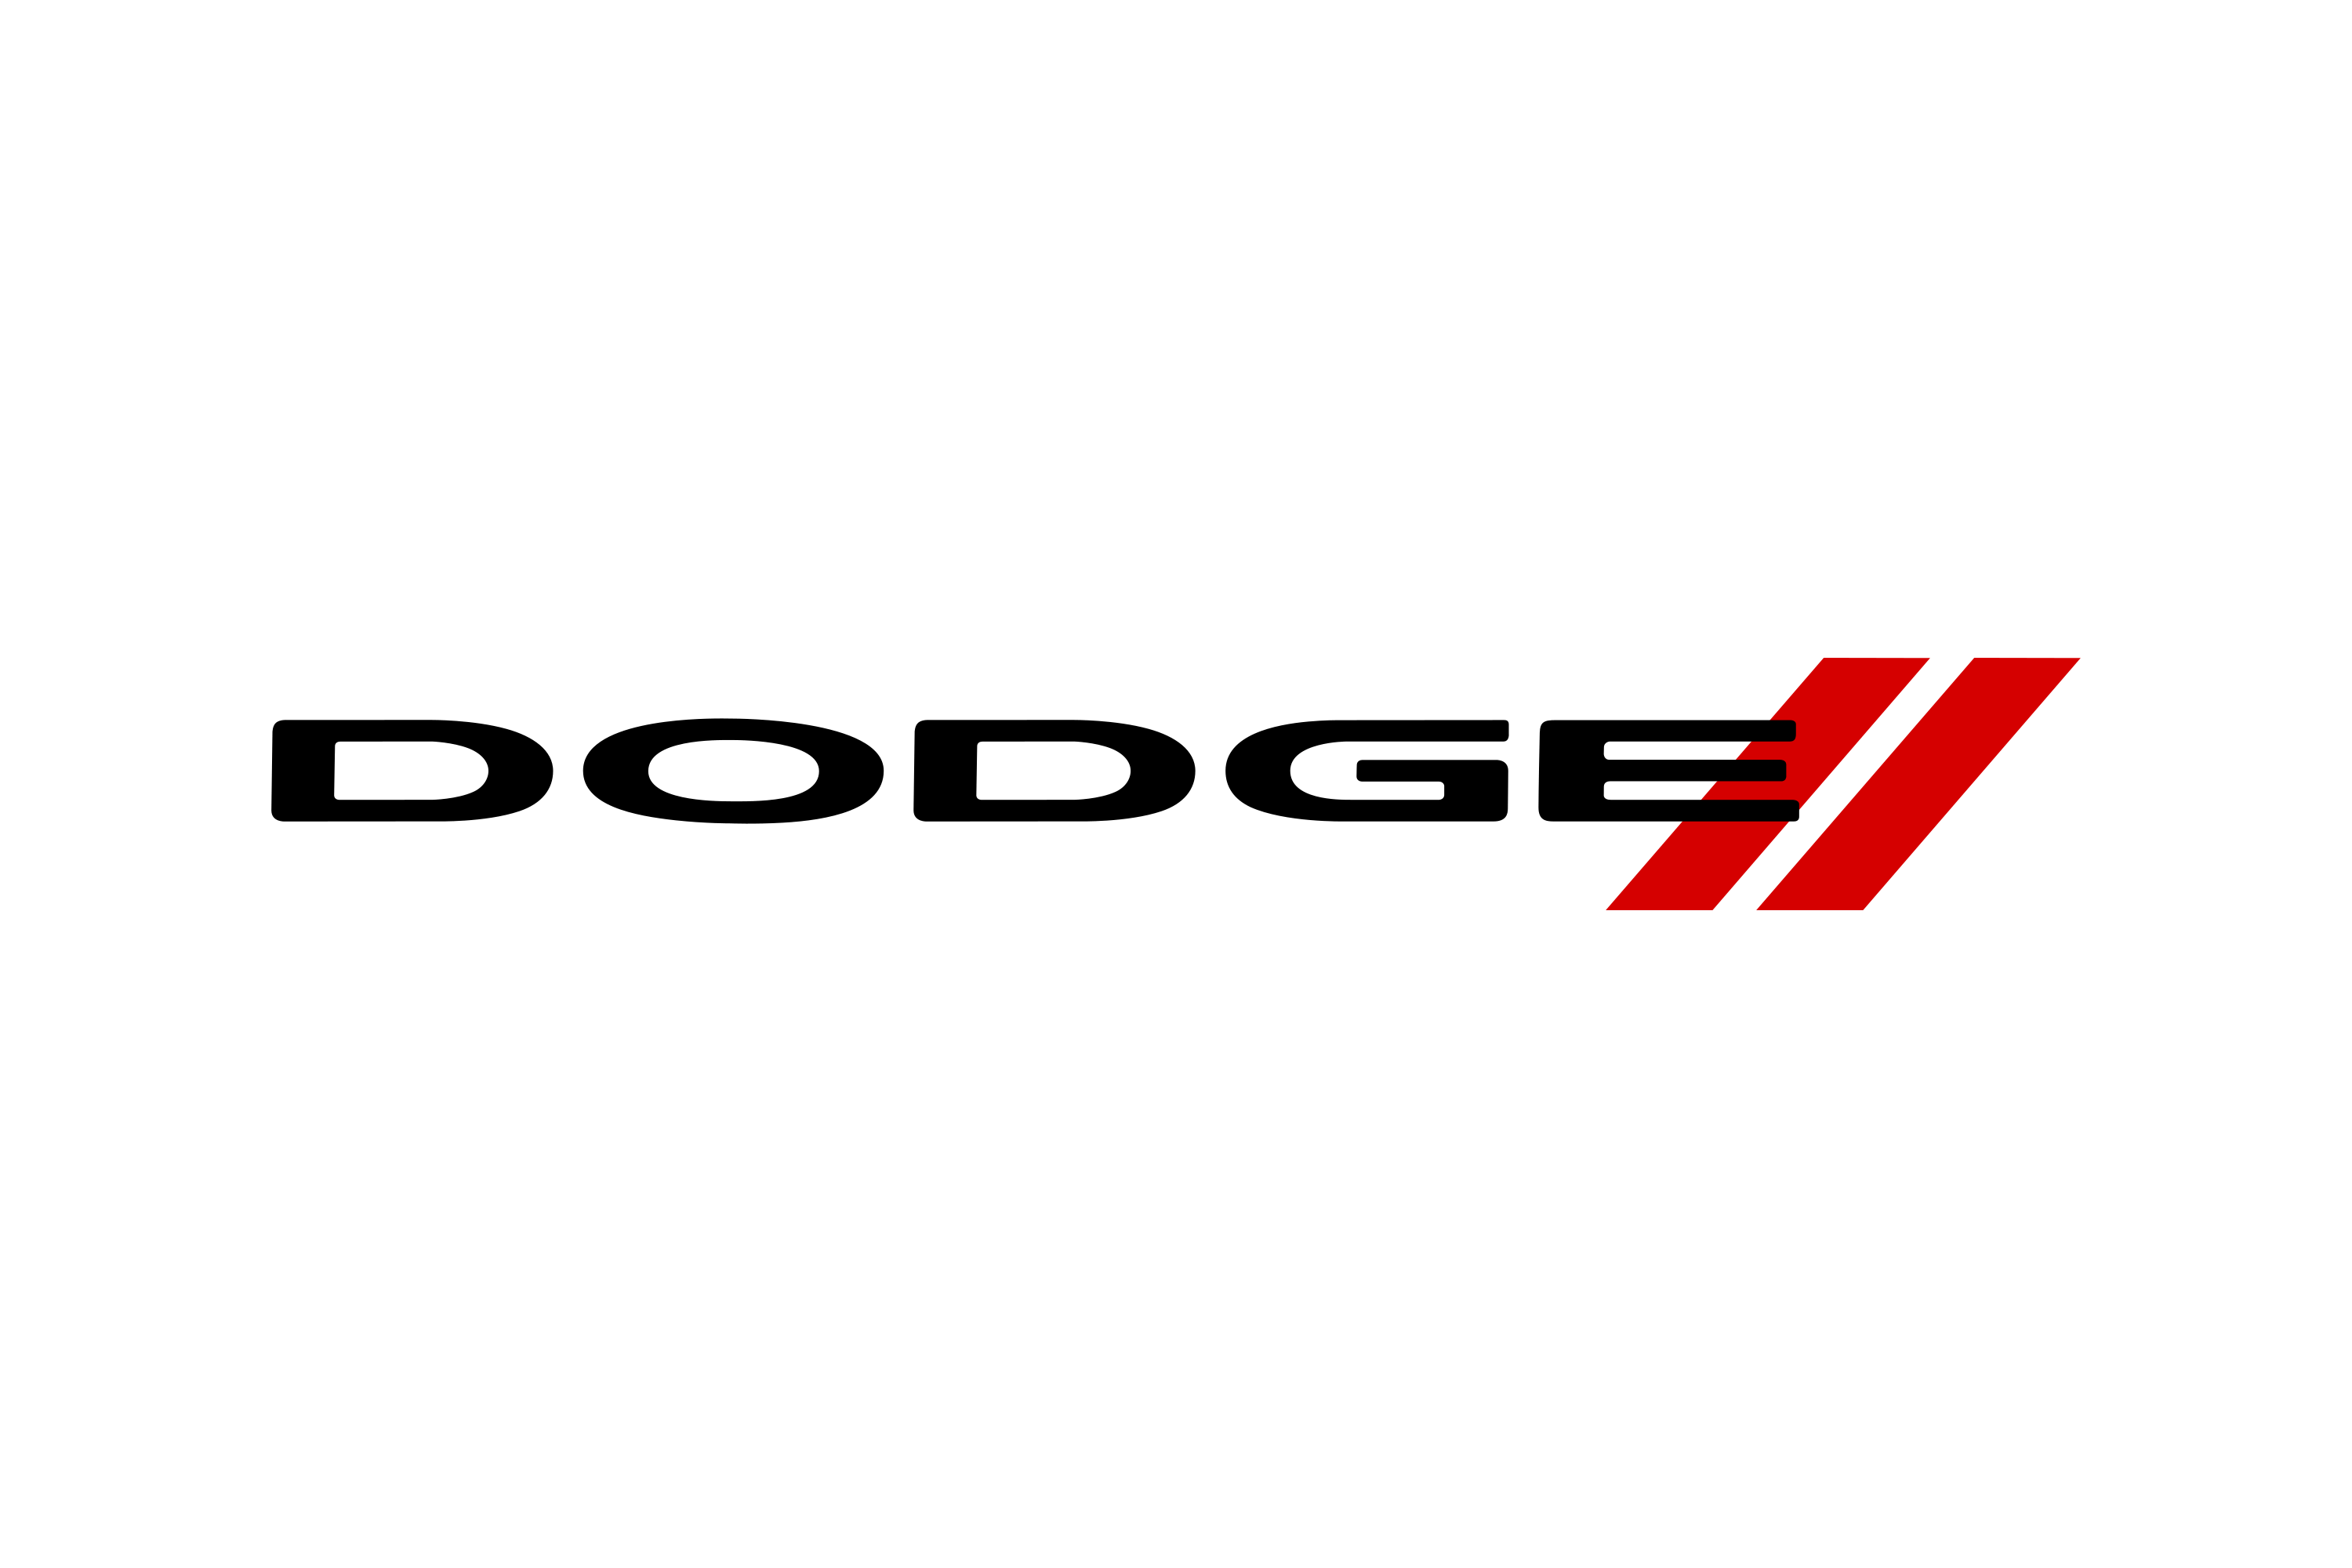 Download Ford Is Better Than Dodge Logo In Svg Vector Or Png File Format Logo Wine